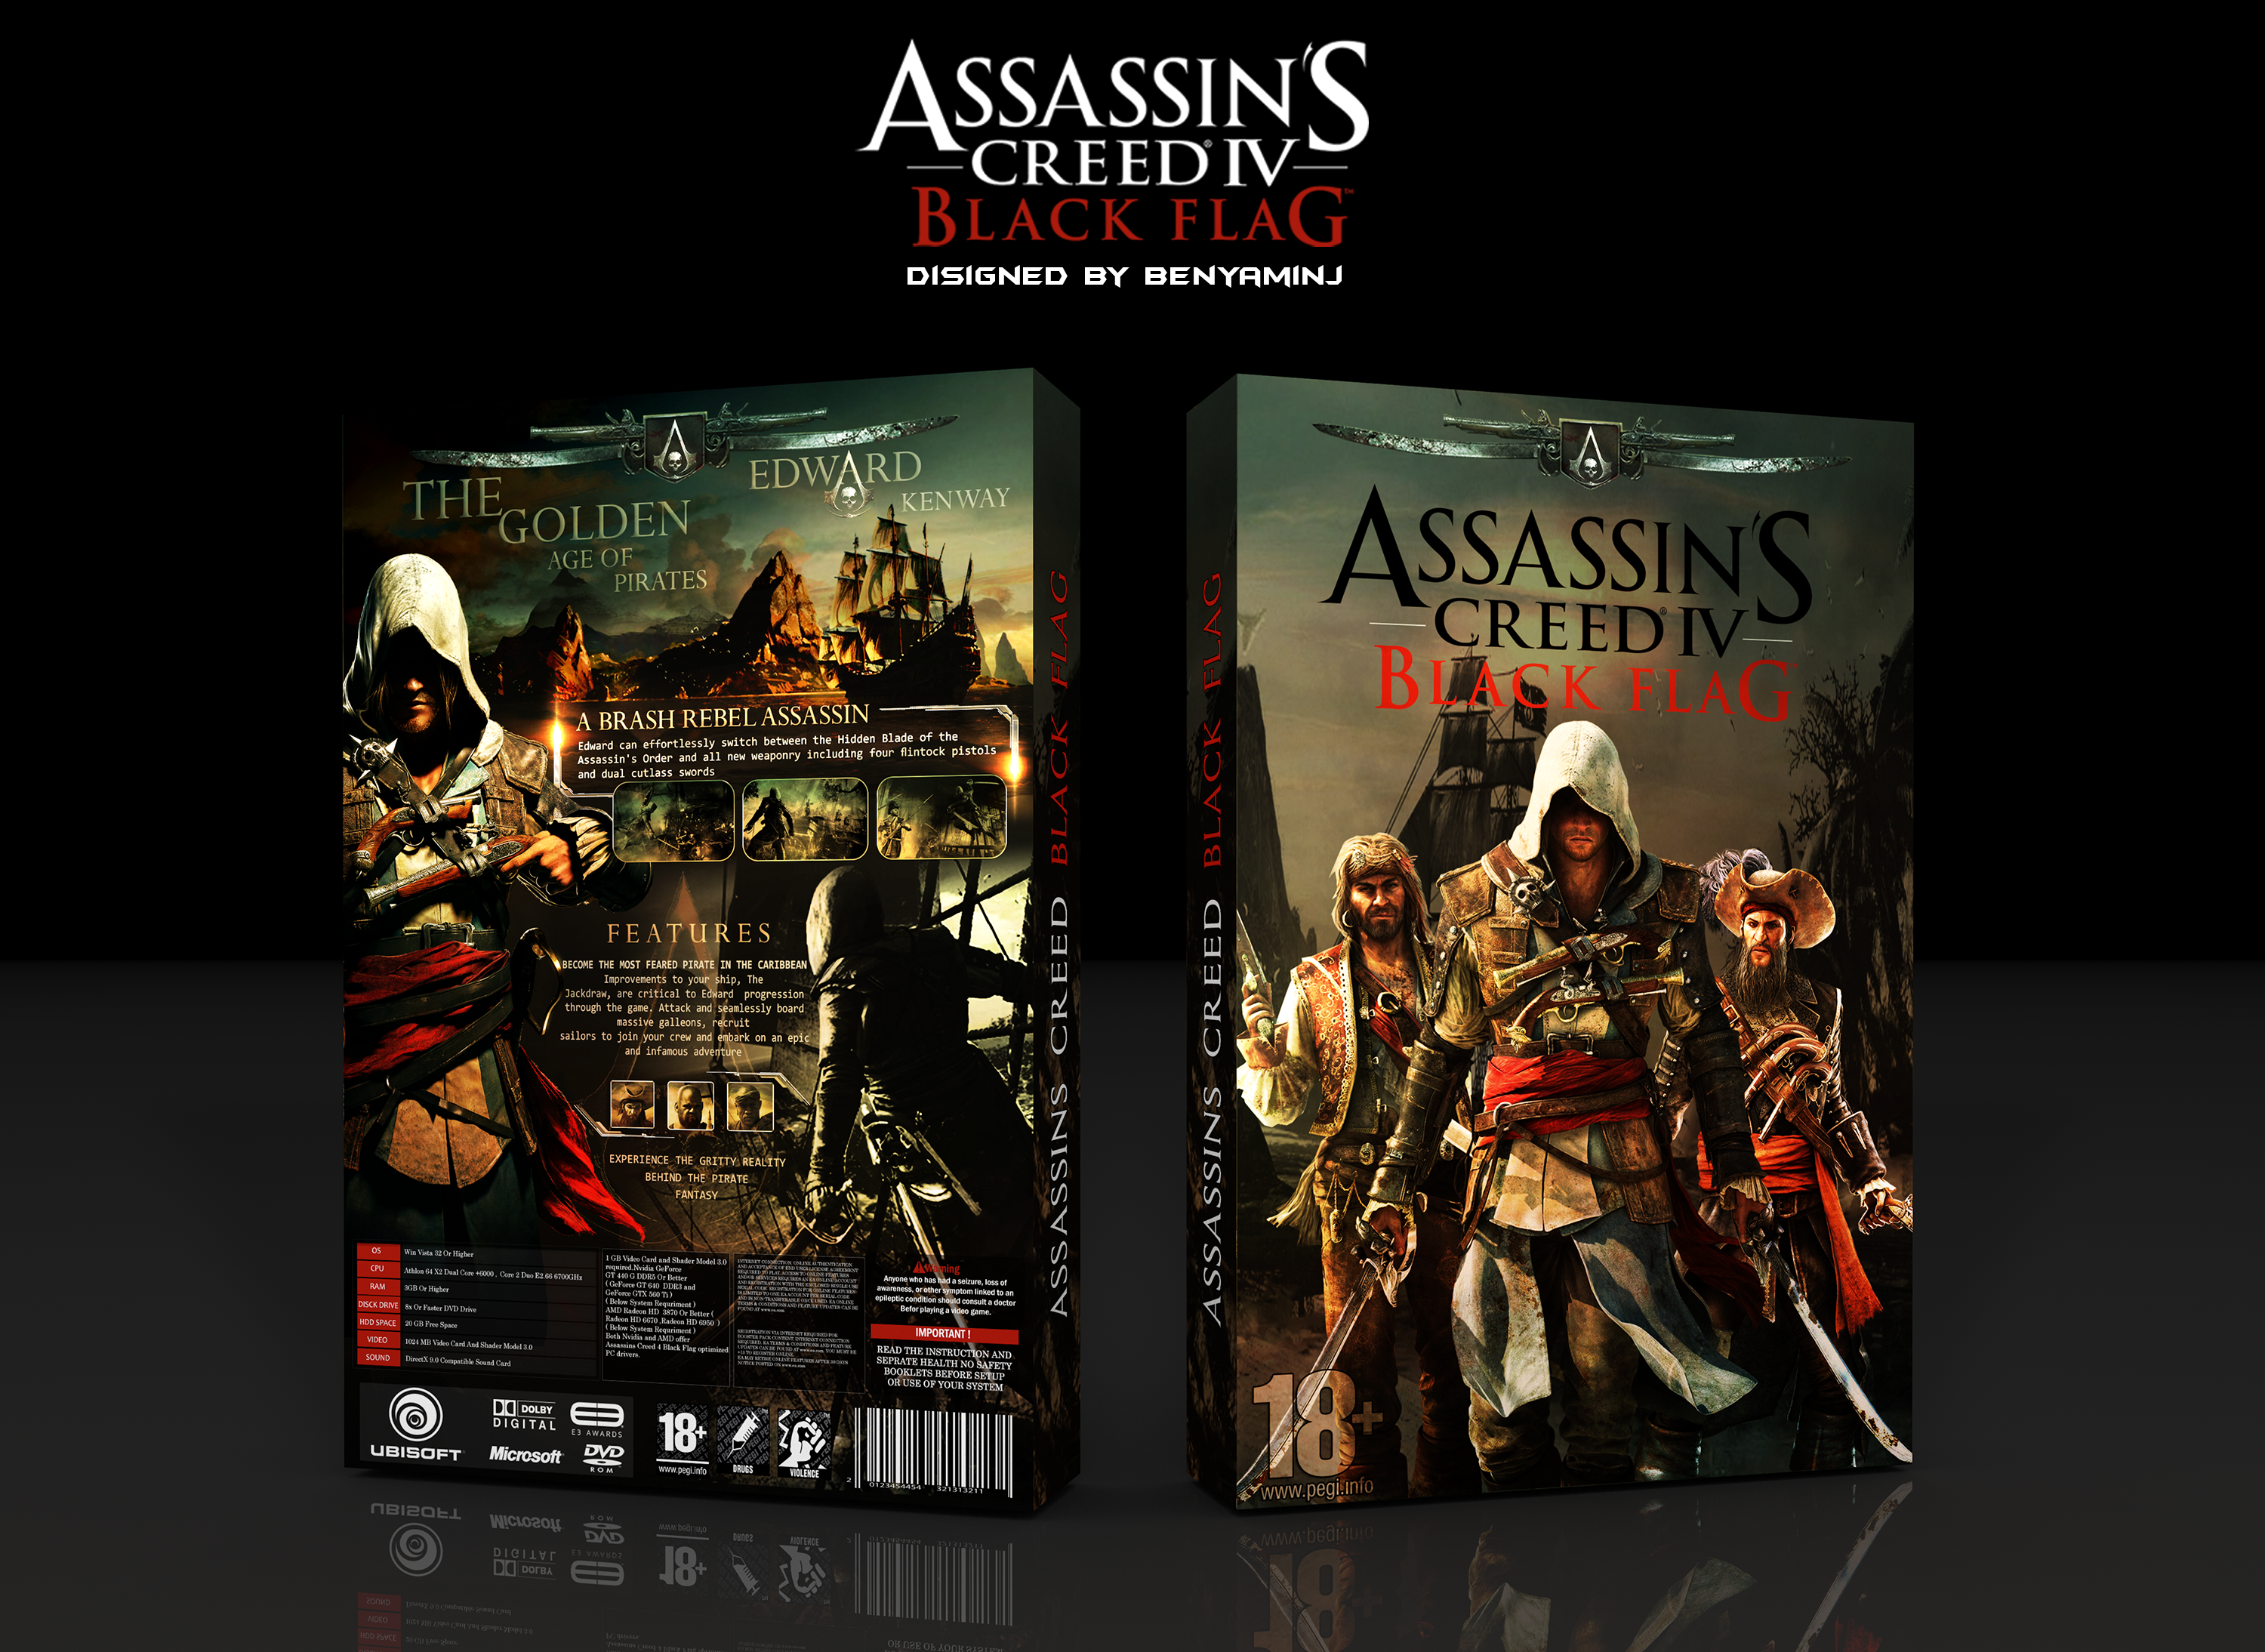 Assassin's Creed IV: Black Flag box cover